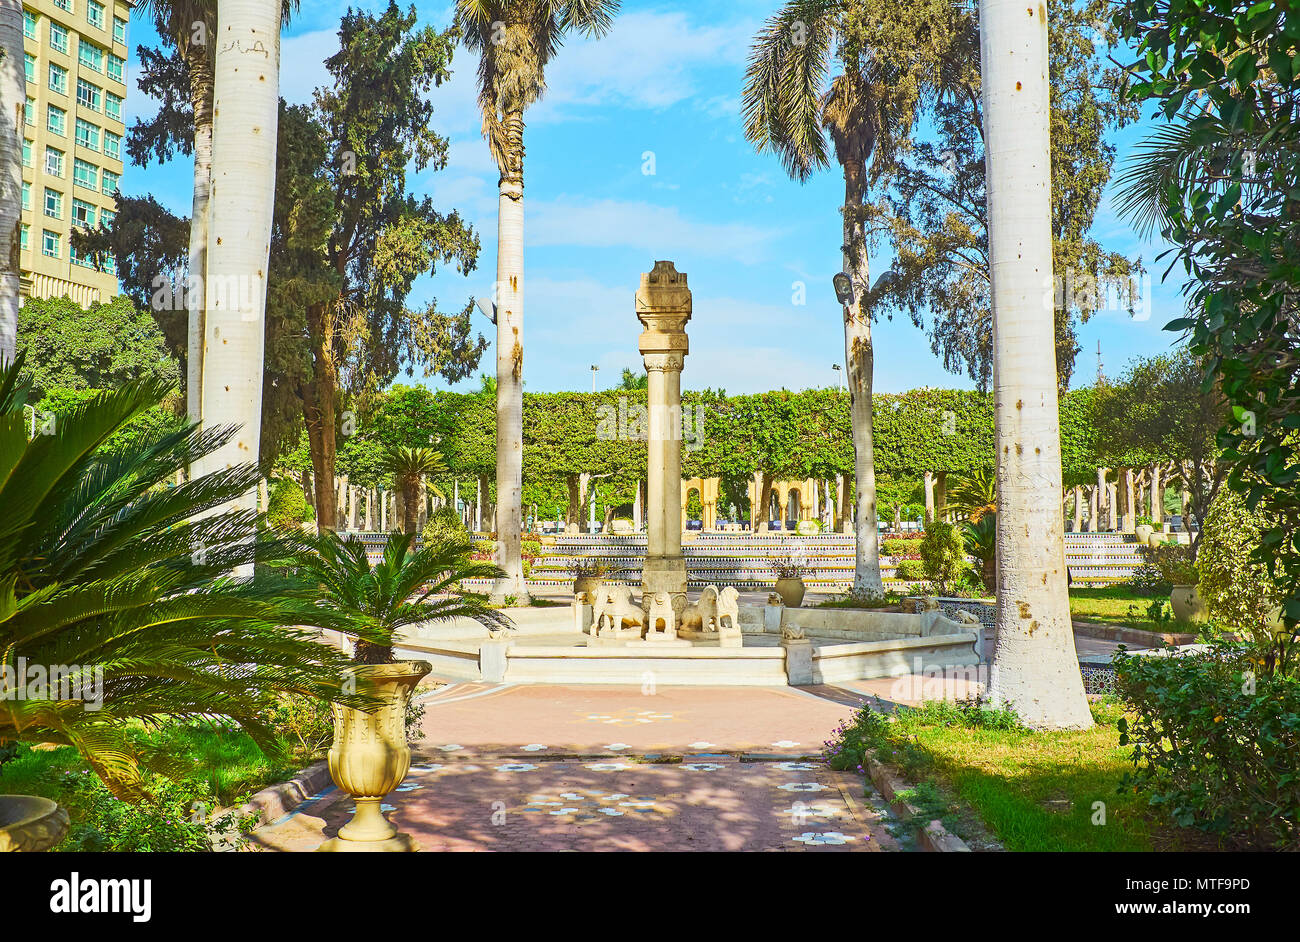 The scenic Al Andalus (Andalusian) garden with ornamental greenery, marble sculptures and statues and fine tilework located in Zamalek district on Gez - Stock Image